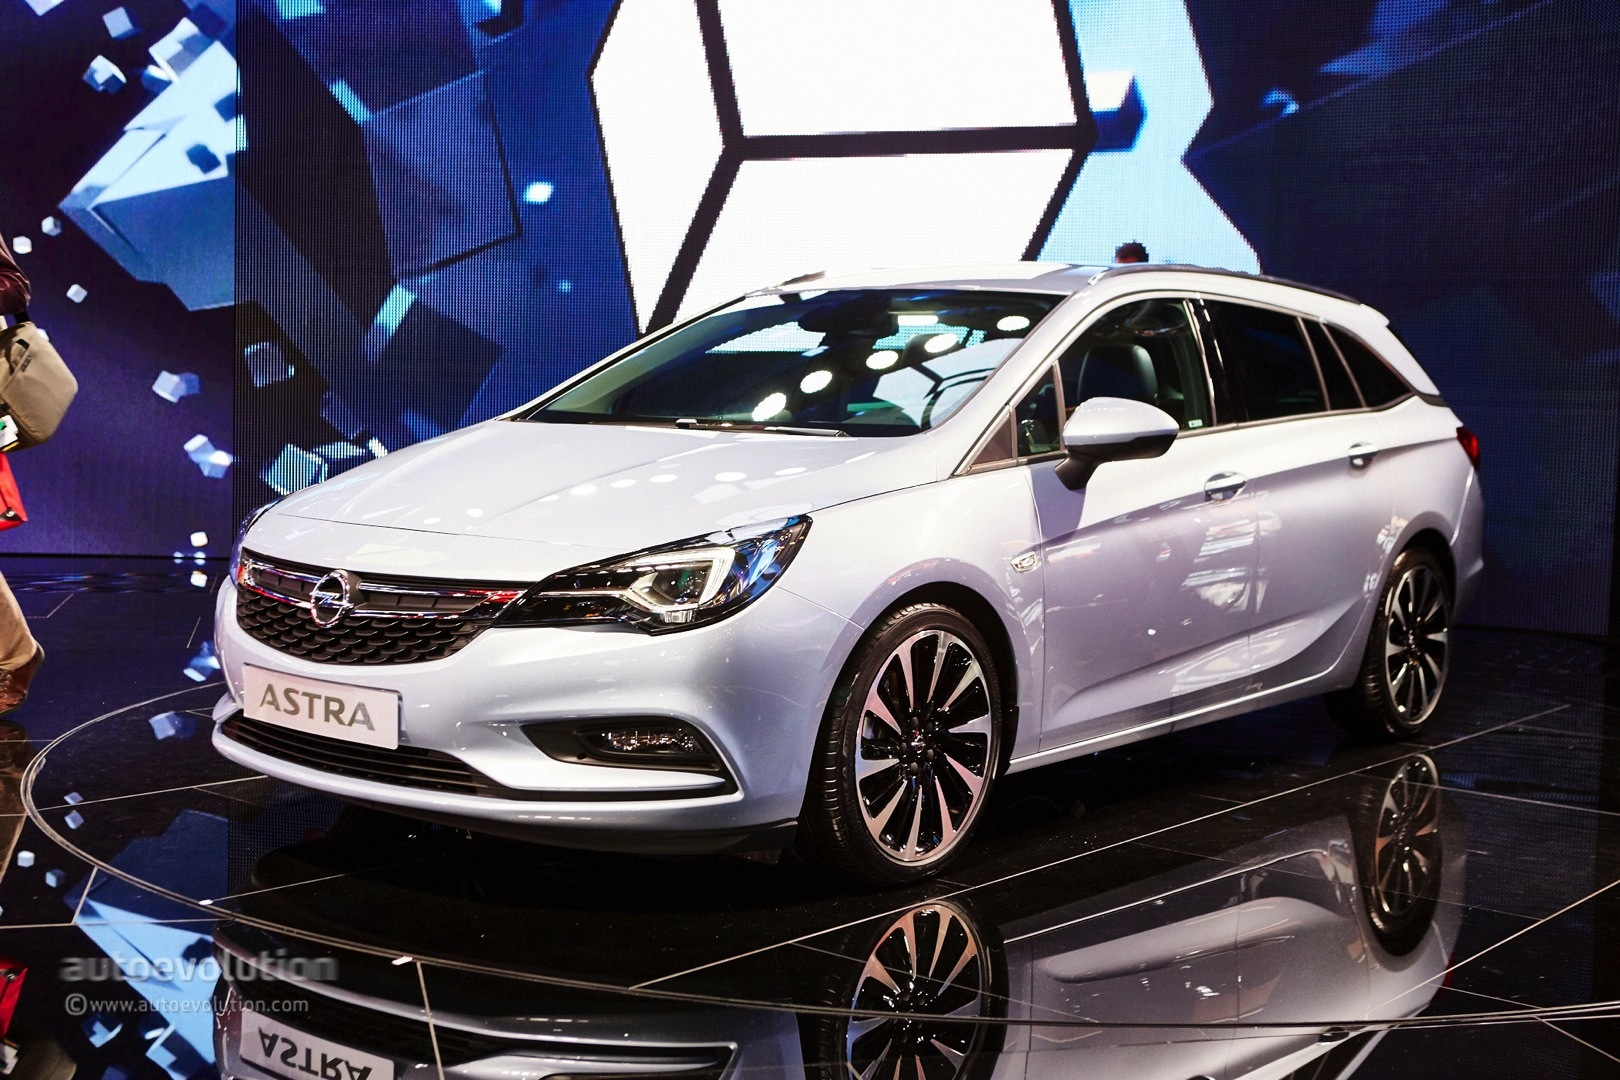 gm ceo mary bara shows opel astra sports tourer in frankfurt 30k astra orders autoevolution. Black Bedroom Furniture Sets. Home Design Ideas